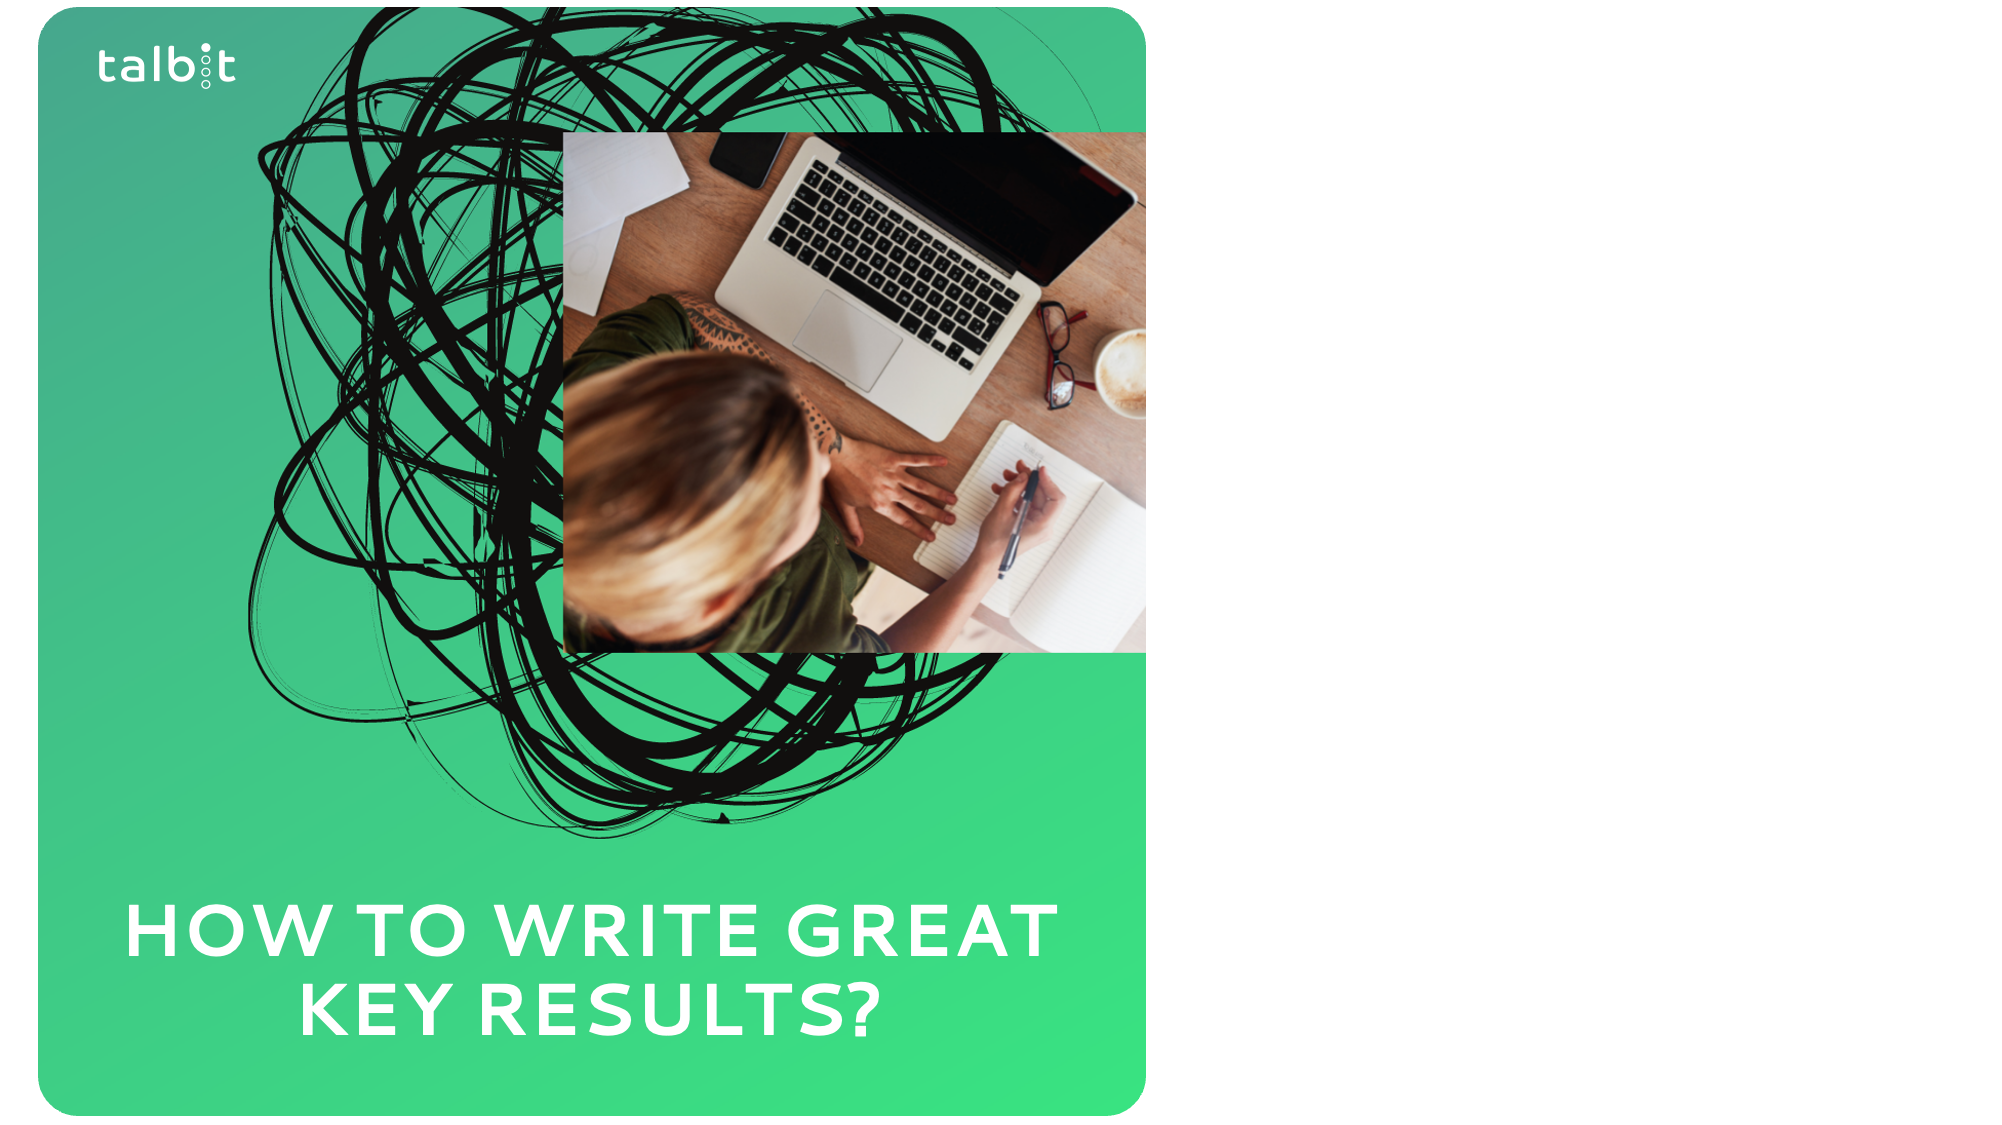 How to write great Key Results?